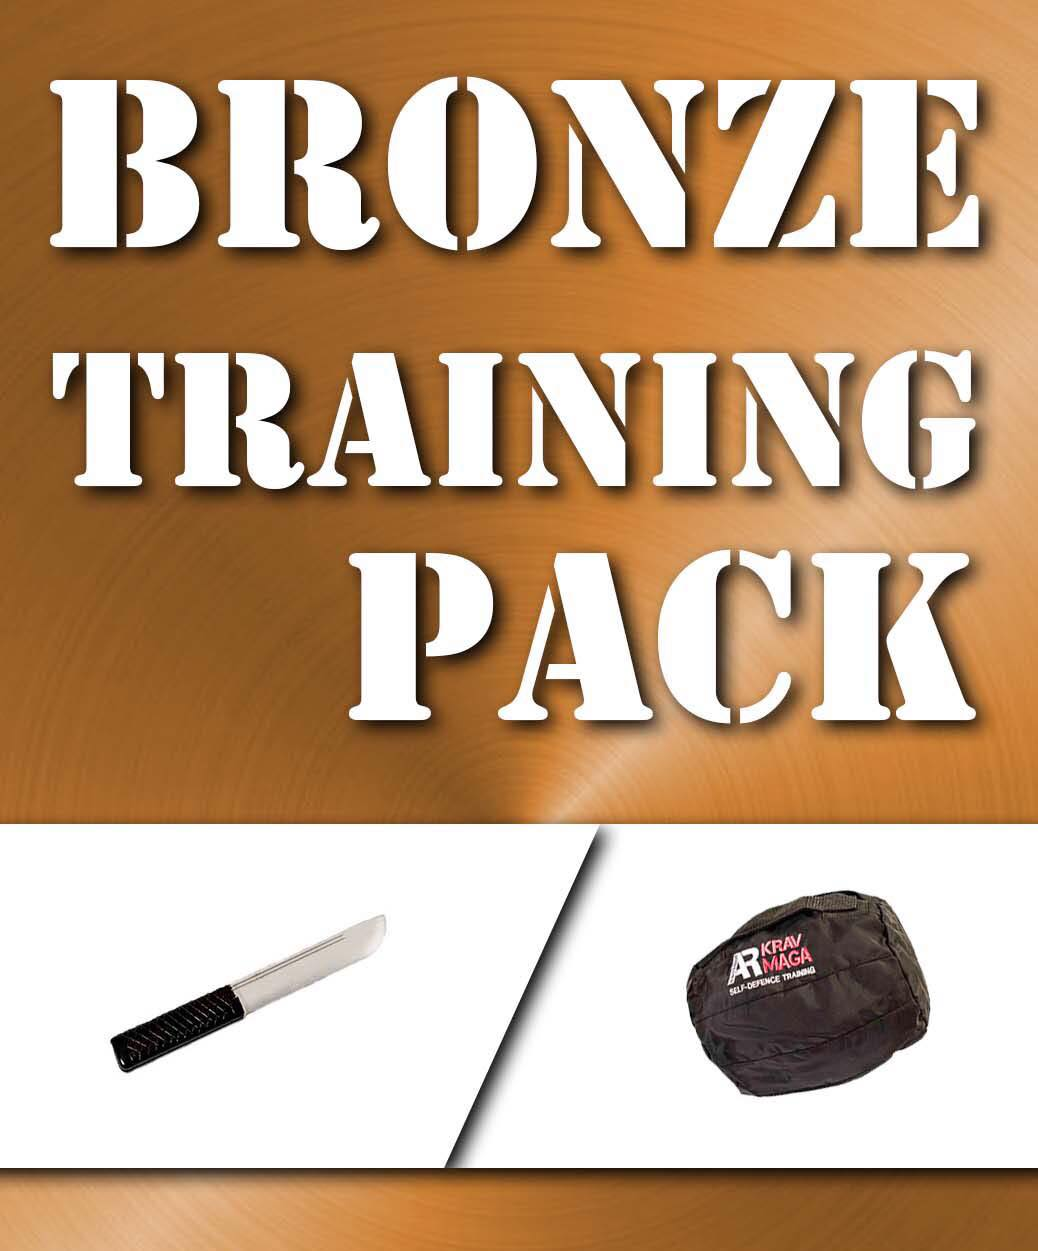 Bronze Training Pack